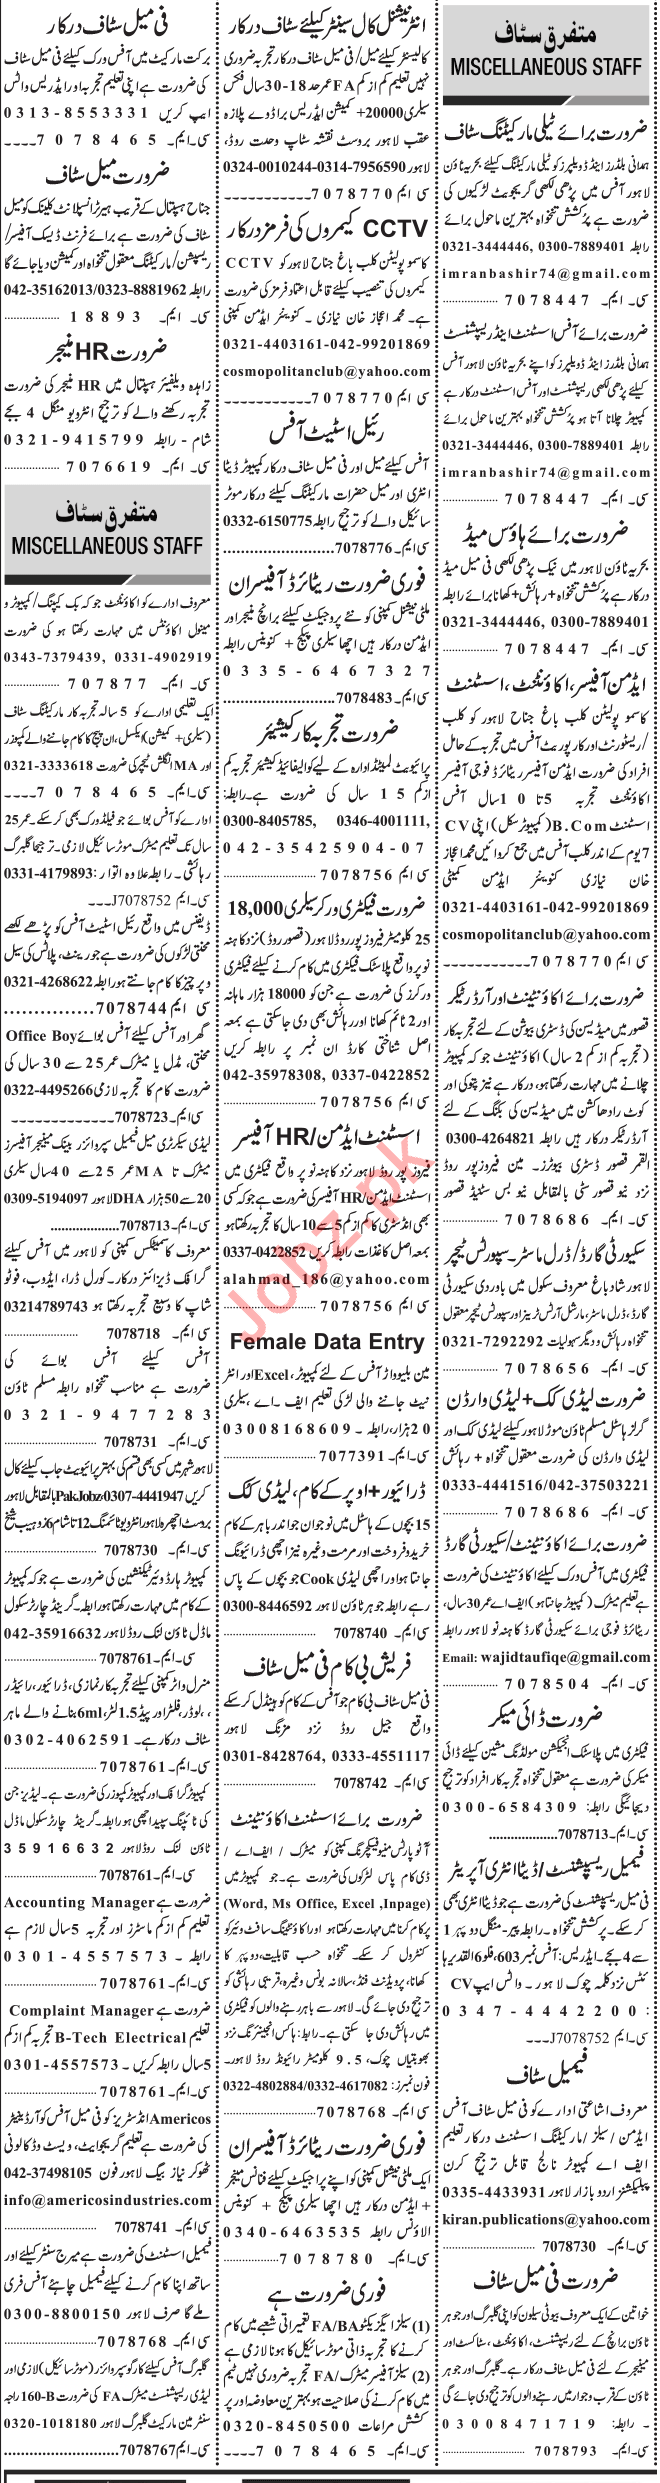 Jang Sunday Classified Ads 26 Jan 2020 for General Staff